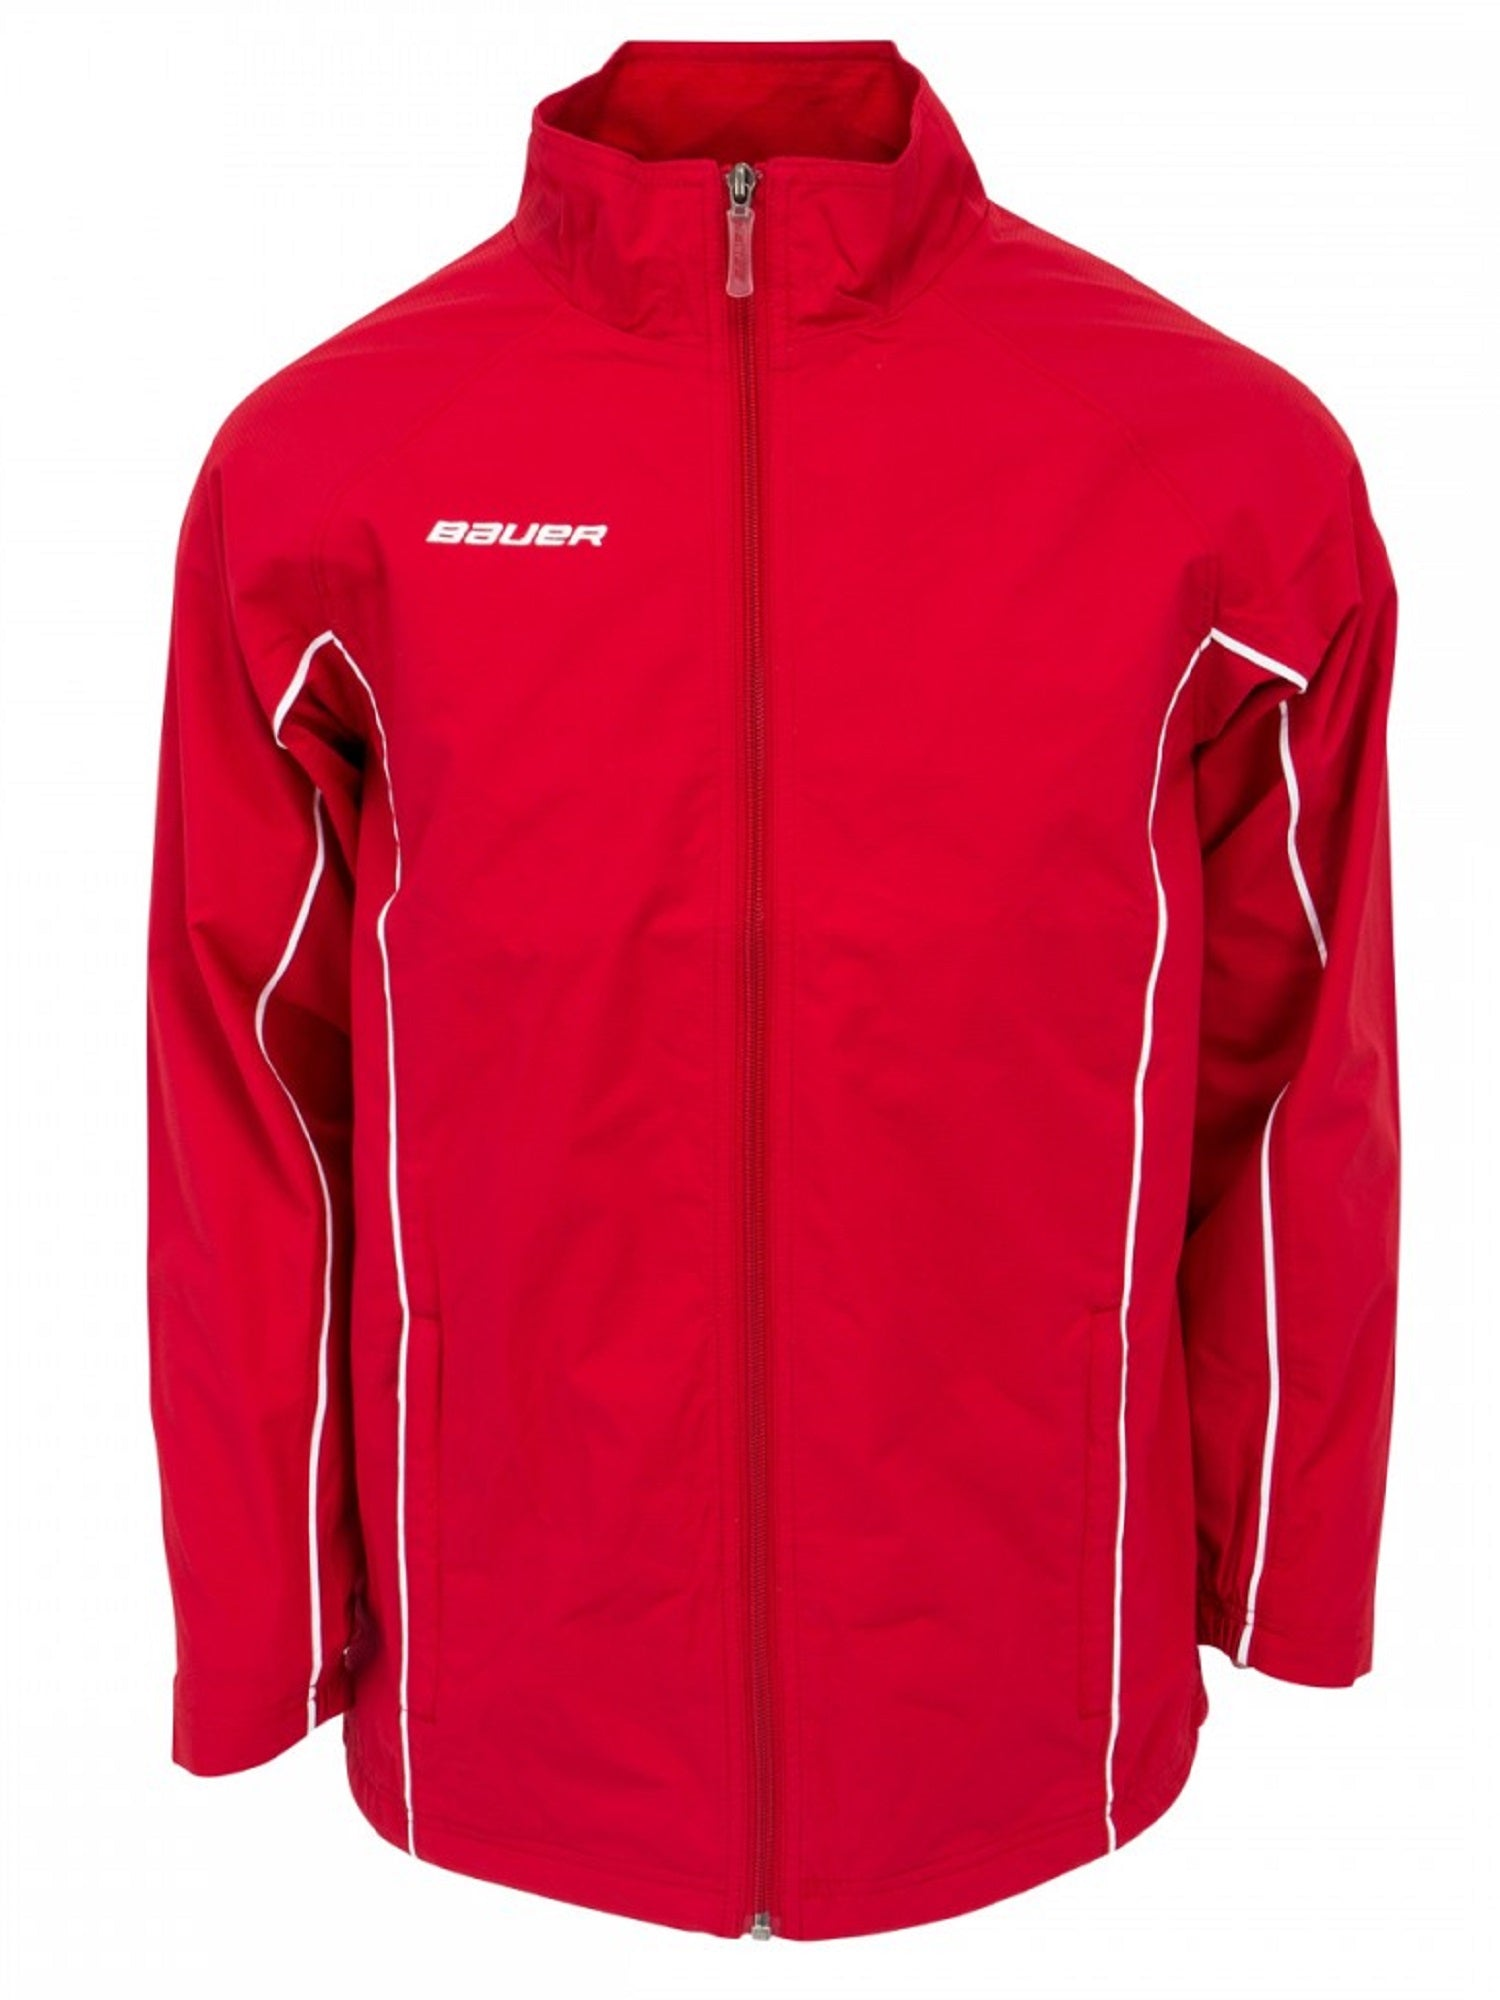 Bauer Youth Warm Up Jacket, Red X-Large